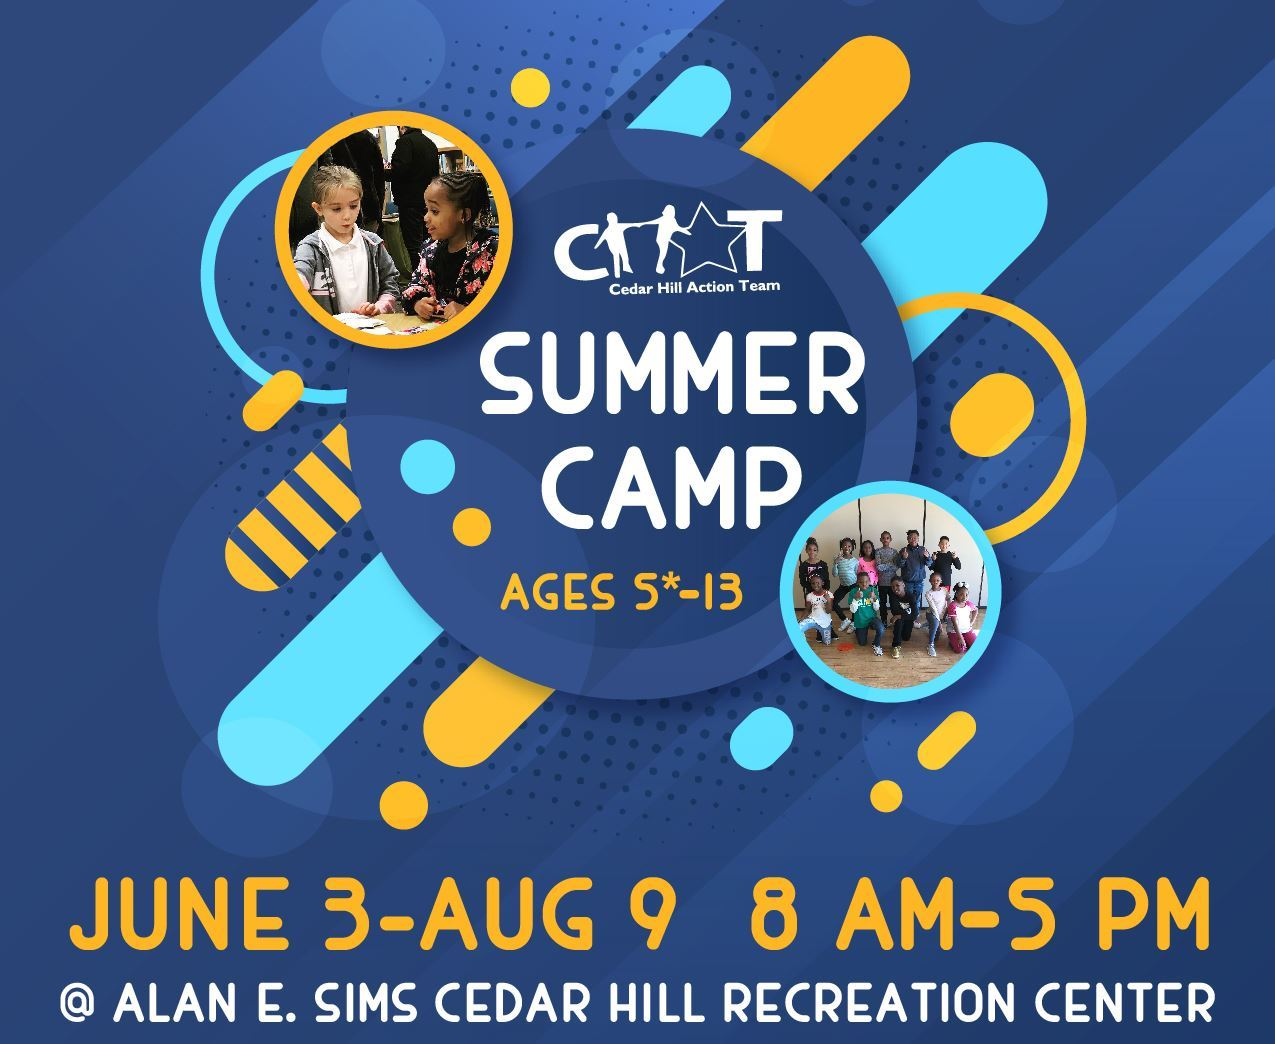 CHAT Summer Camp 2019